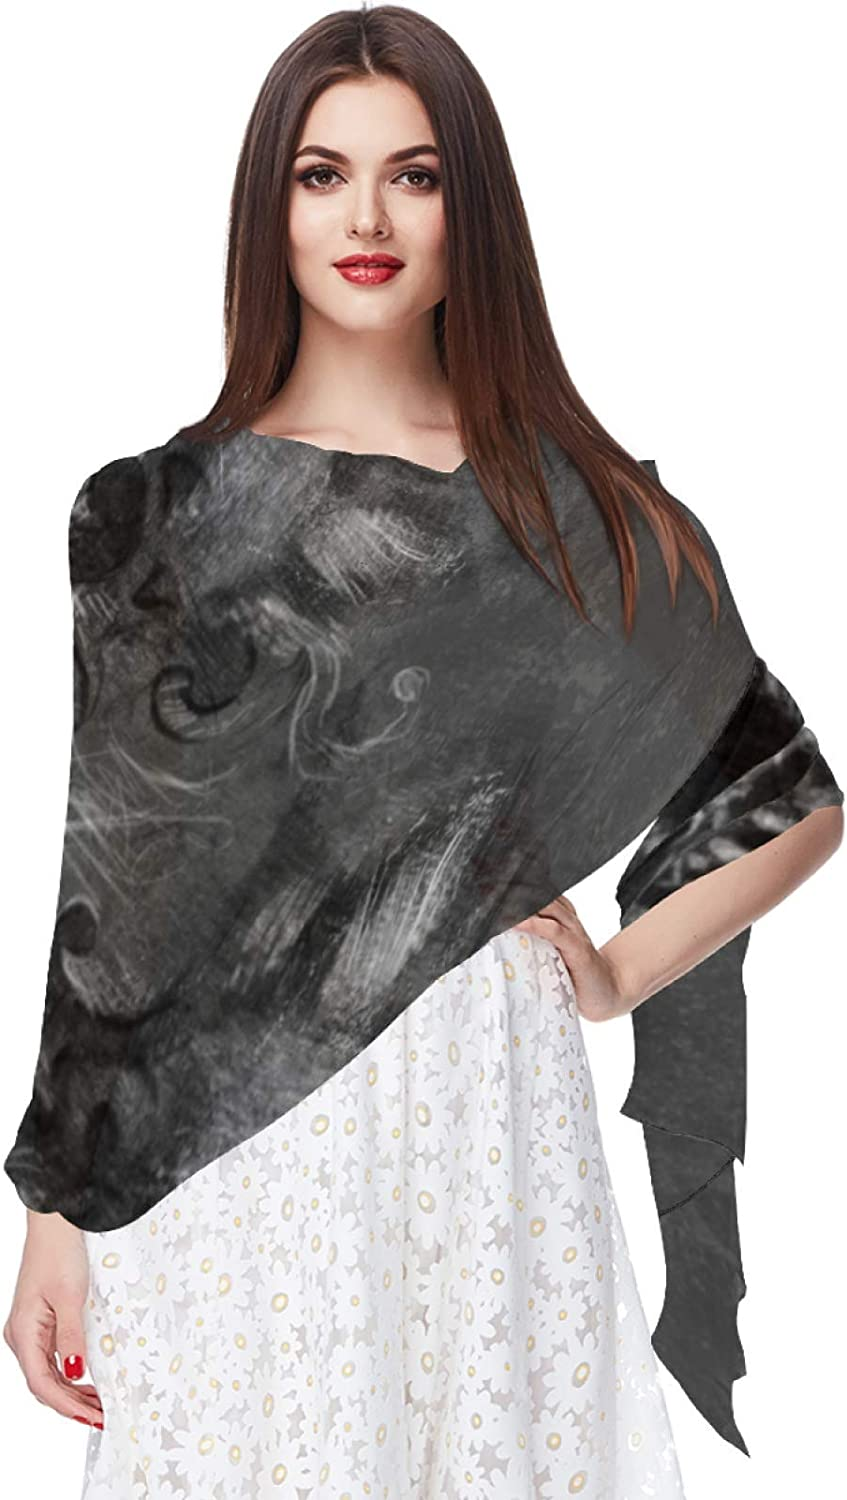 Vintage Wolf With Skull Women Soft Chiffon Pashmina Shawl Wrap Scarf for Bridesmaid Wedding Formal Party Evening Dress